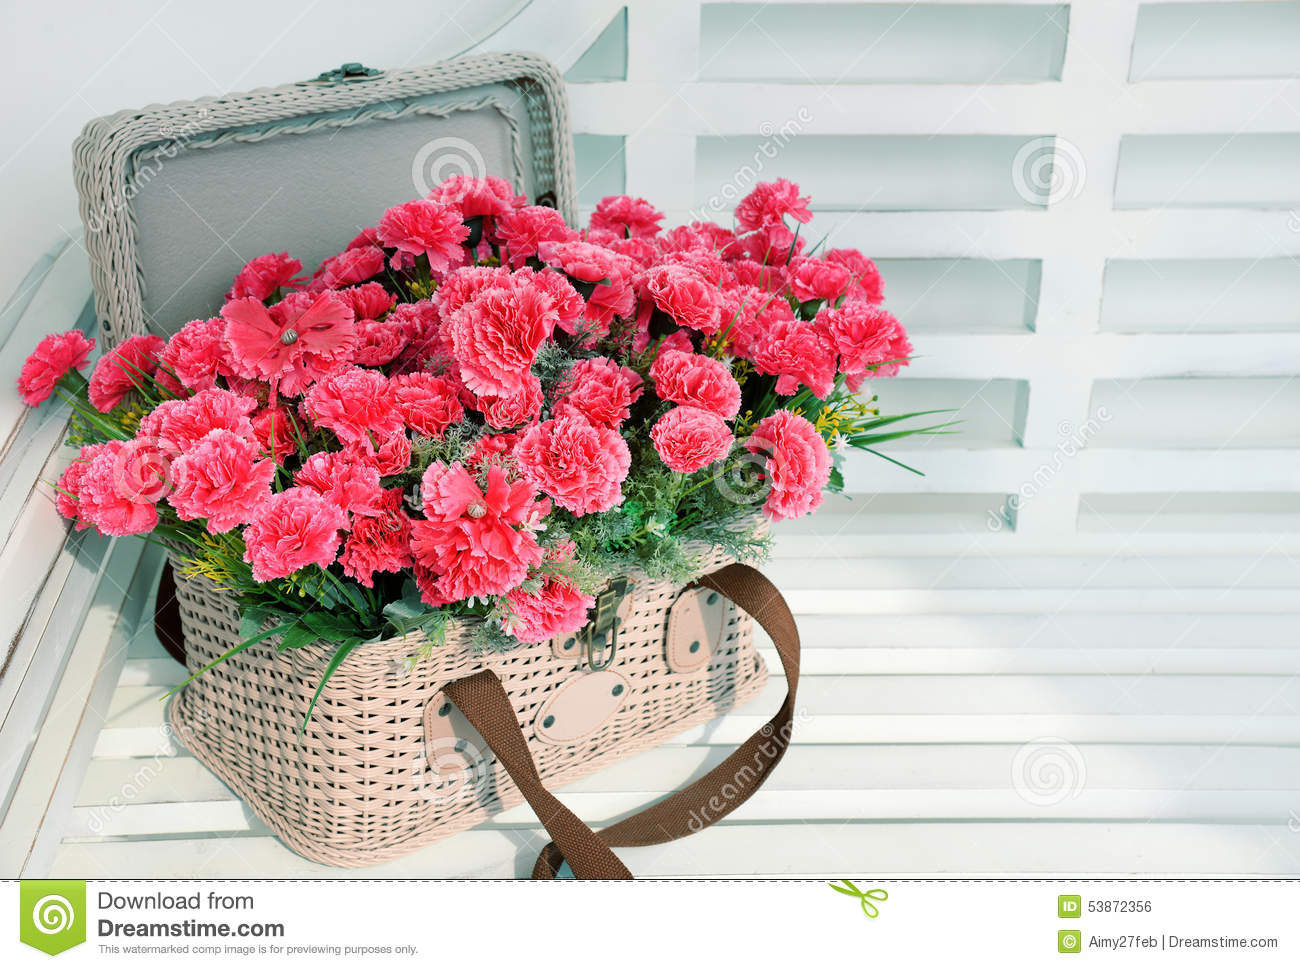 Pink flowers in basket stock photo image of card daisy 53872356 download pink flowers in basket stock photo image of card daisy 53872356 mightylinksfo